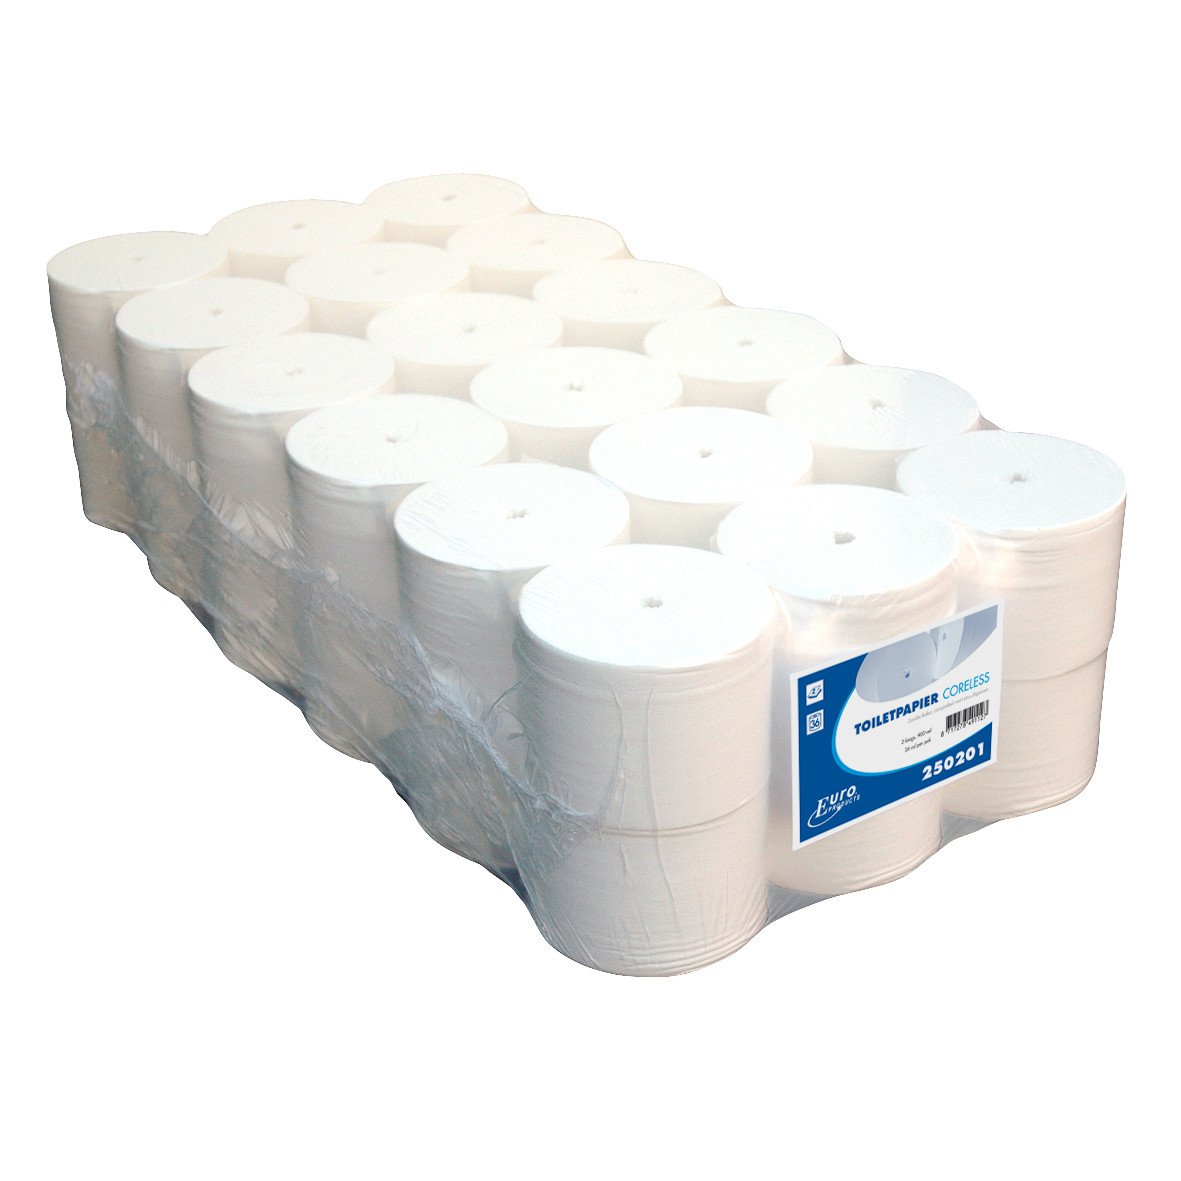 Euro Products | Toiletpapier | 2-laags | Coreless compact | 36 x 900 vel